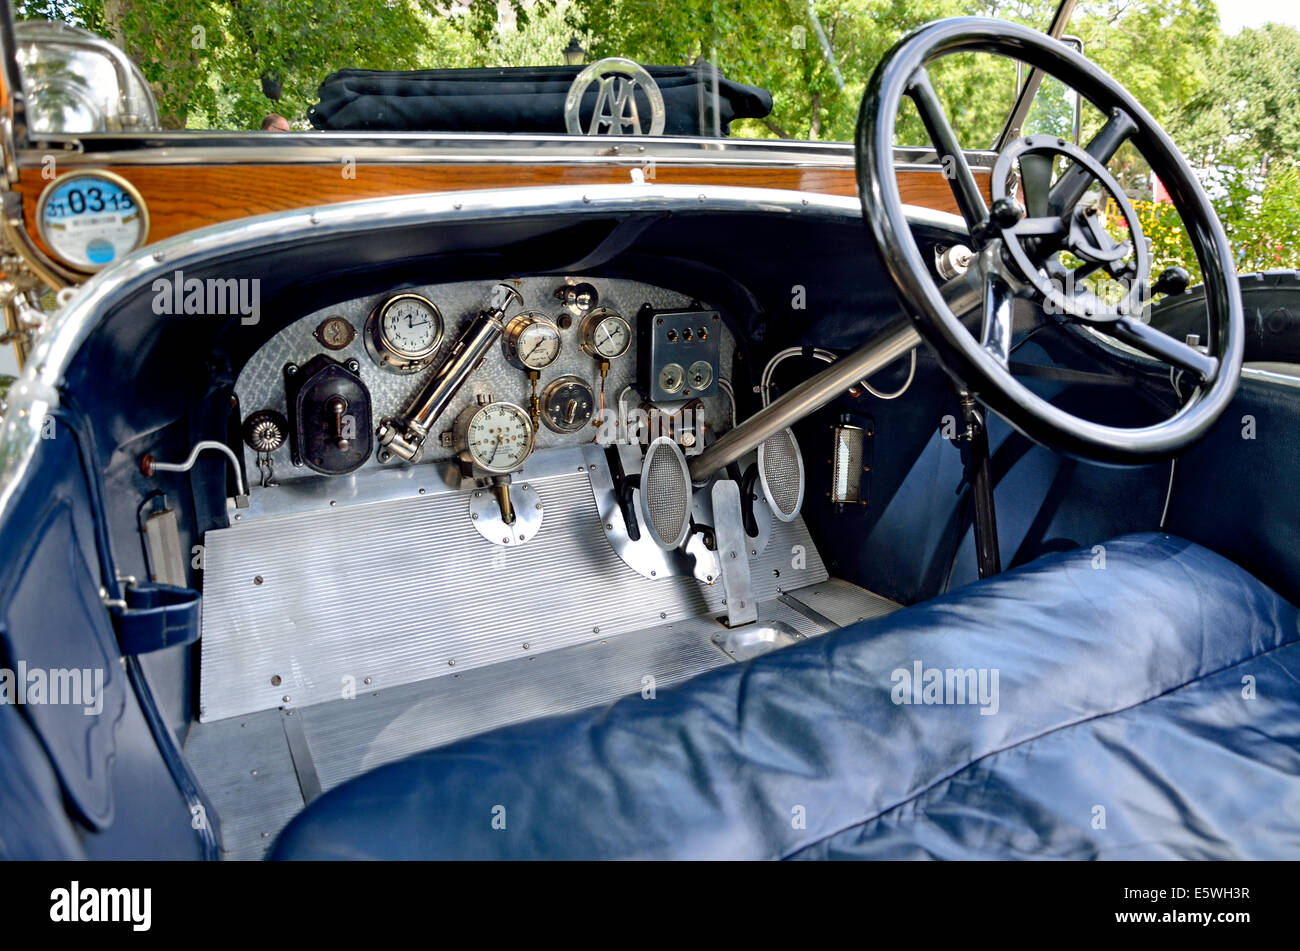 1912 Vauxhall A Type classic car - controls - Stock Image